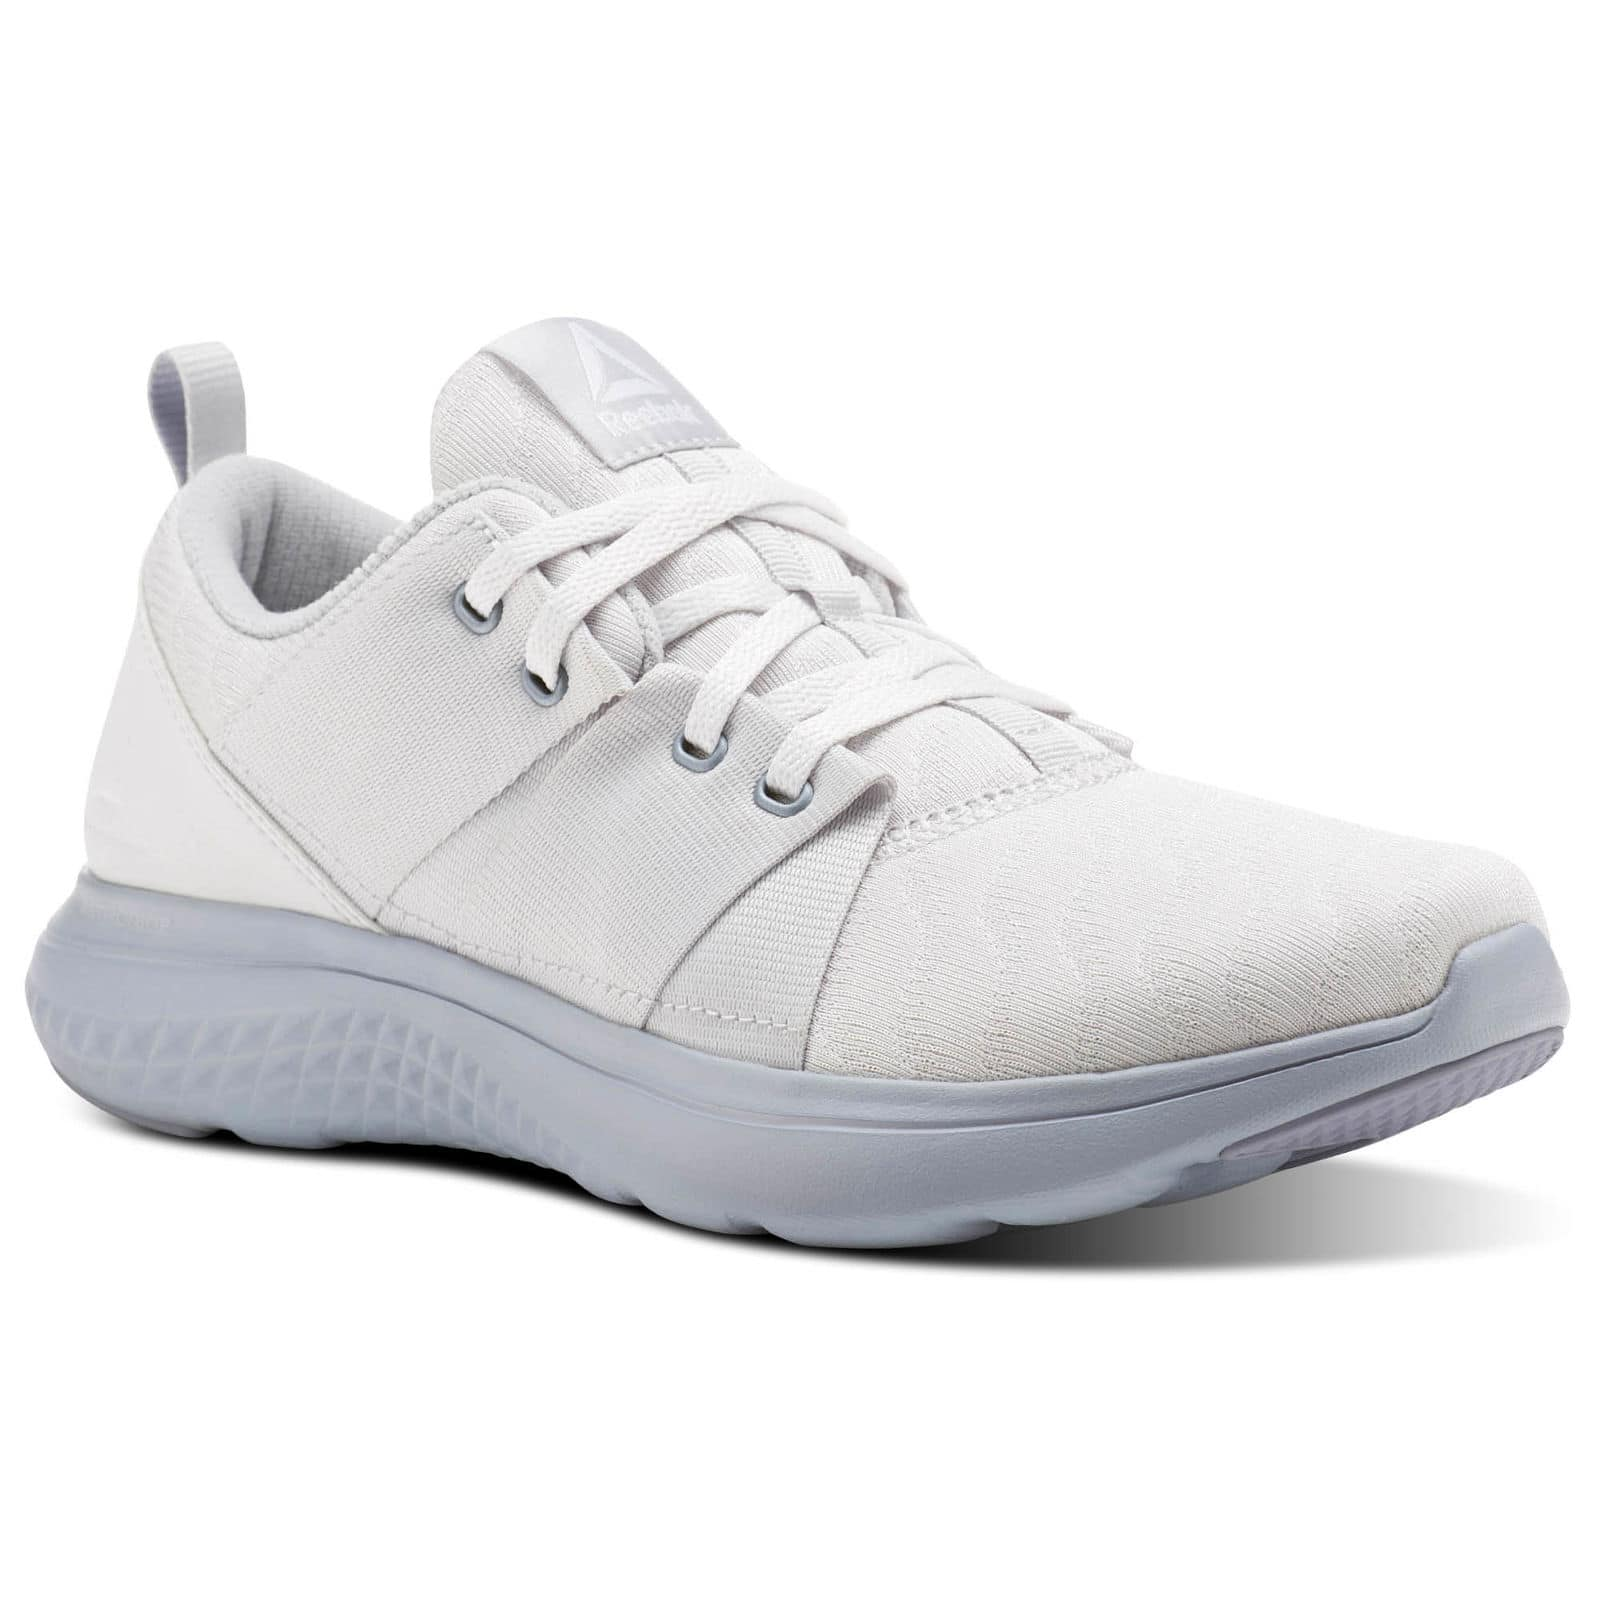 Reebok Shoes  Women s Astroride Athlux Run Shoes - Slickdeals.net 0671cc0a8